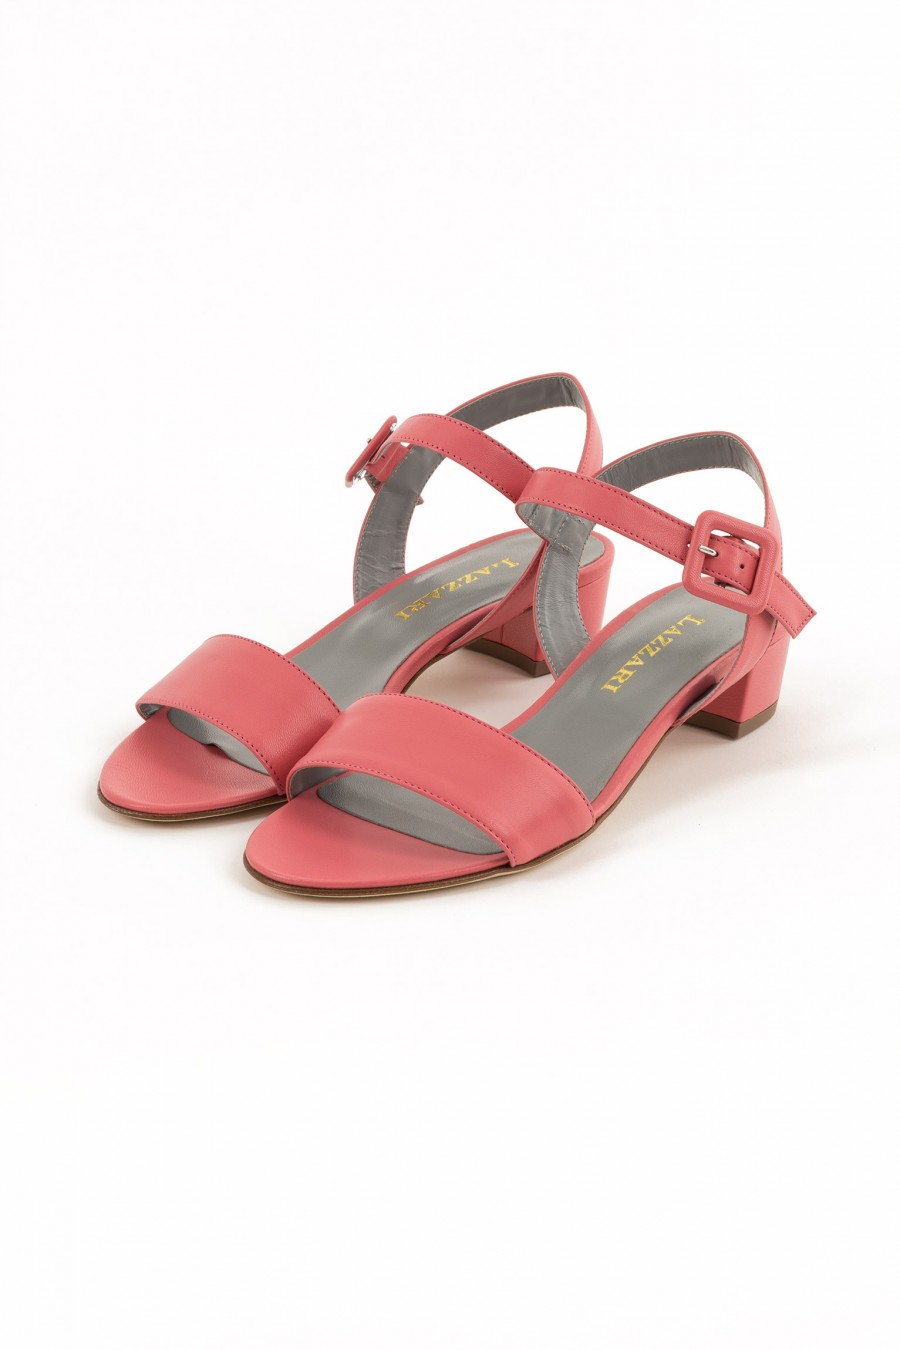 Pink sandal with one list